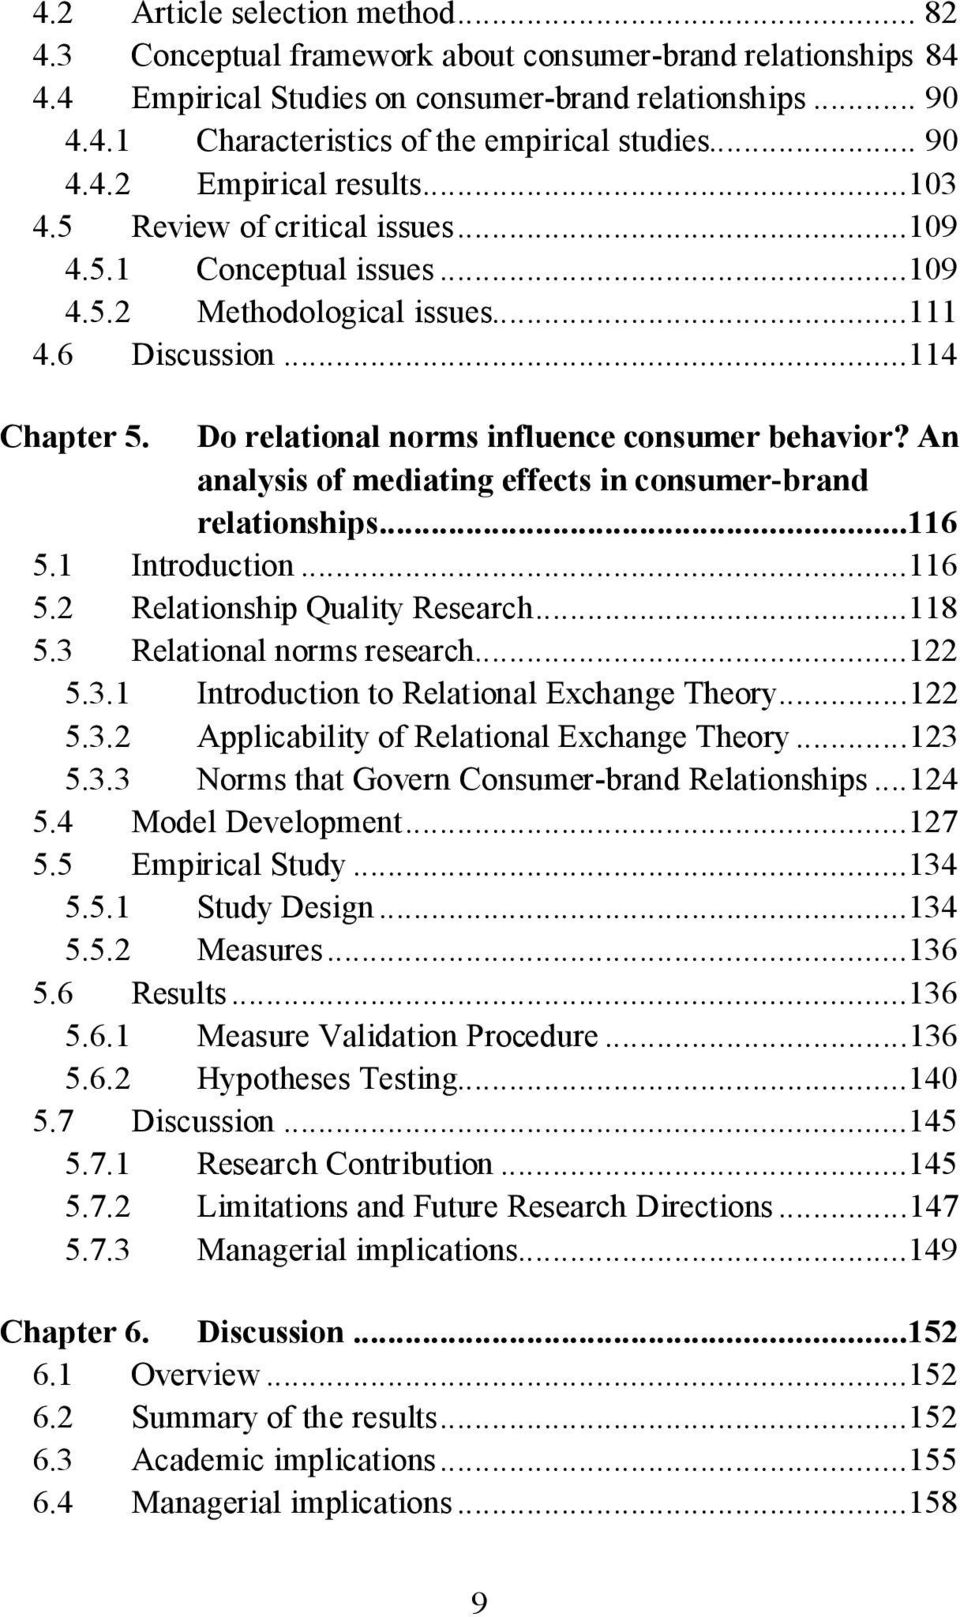 Do relational norms influence consumer behavior? An analysis of mediating effects in consumer-brand relationships...116 5.1 Introduction...116 5.2 Relationship Quality Research...118 5.